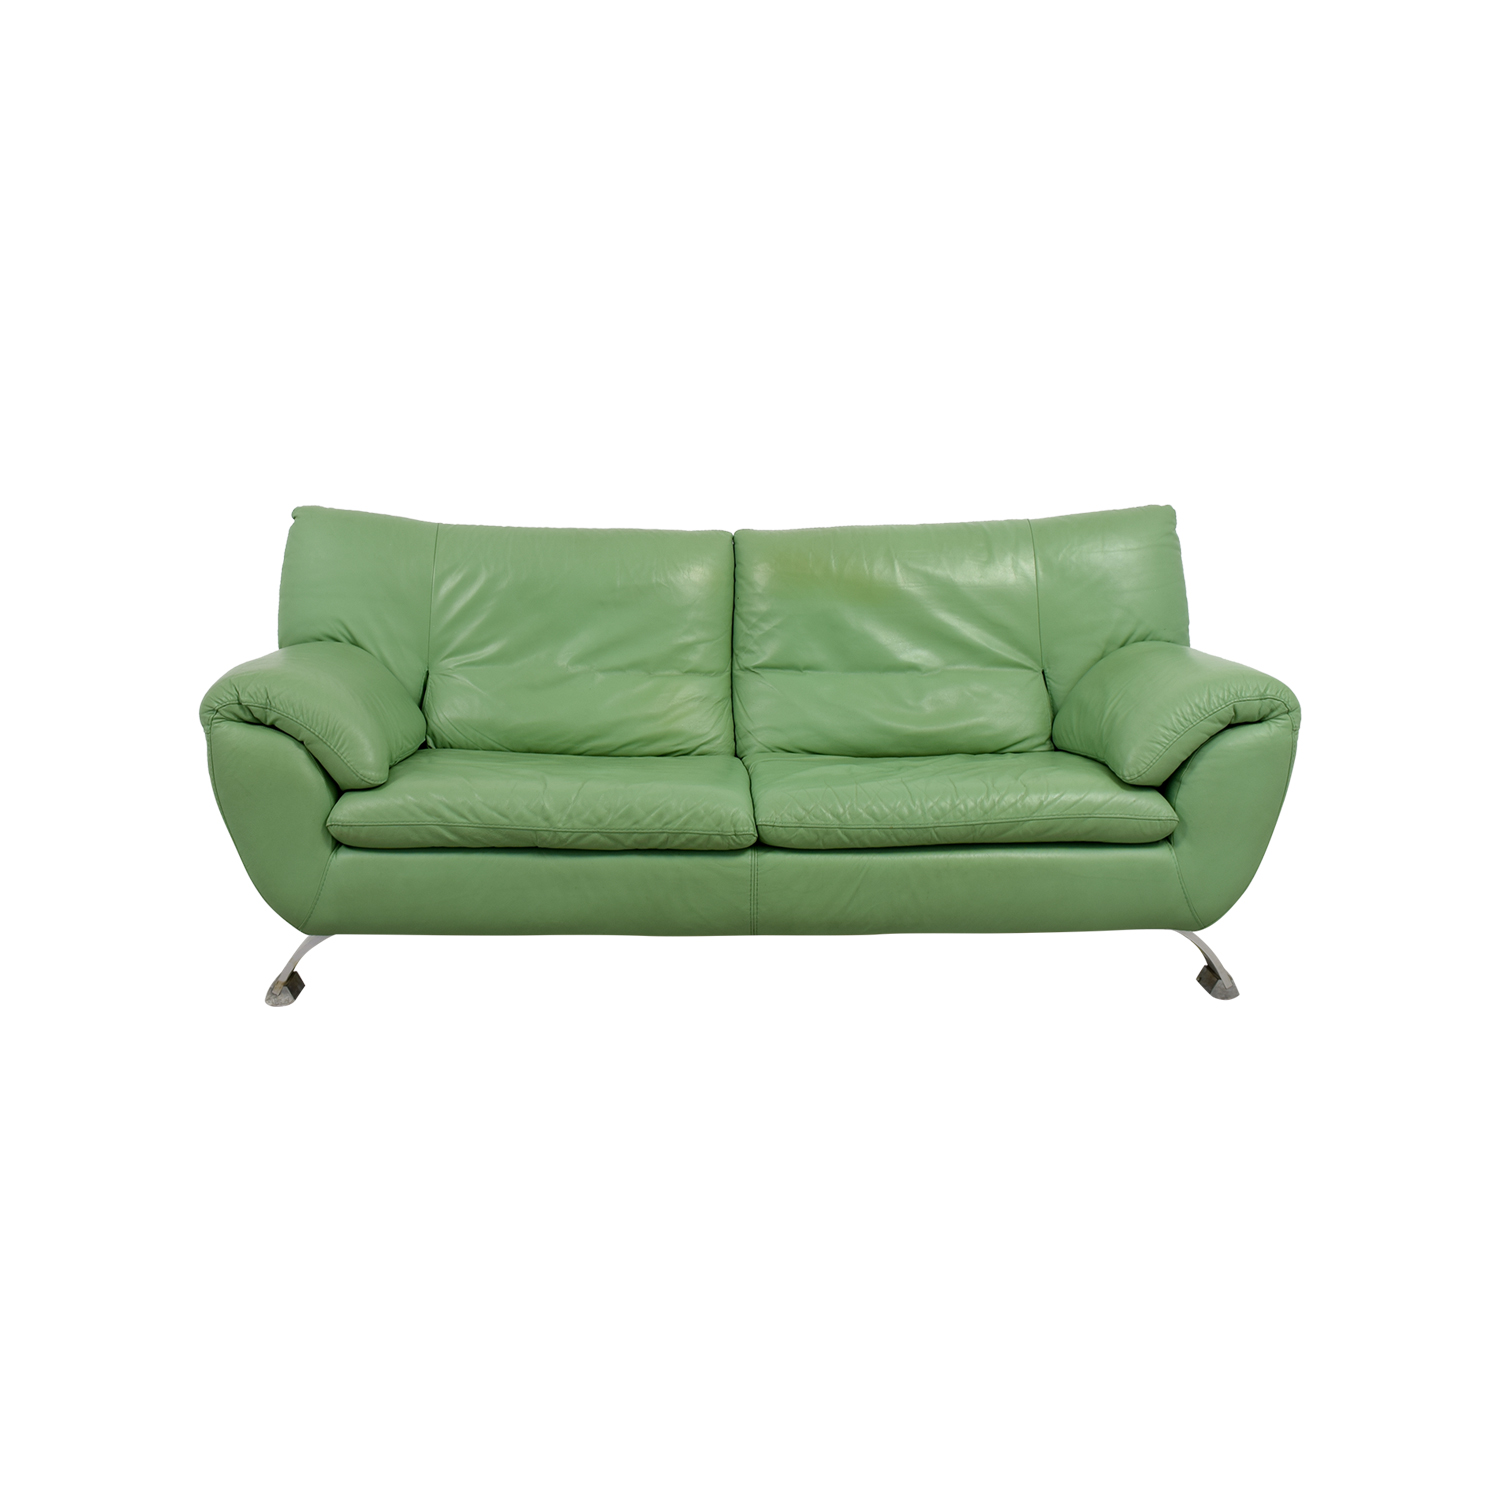 Nicoletti Nicoletti Green Leather Sofa Dimensions ...